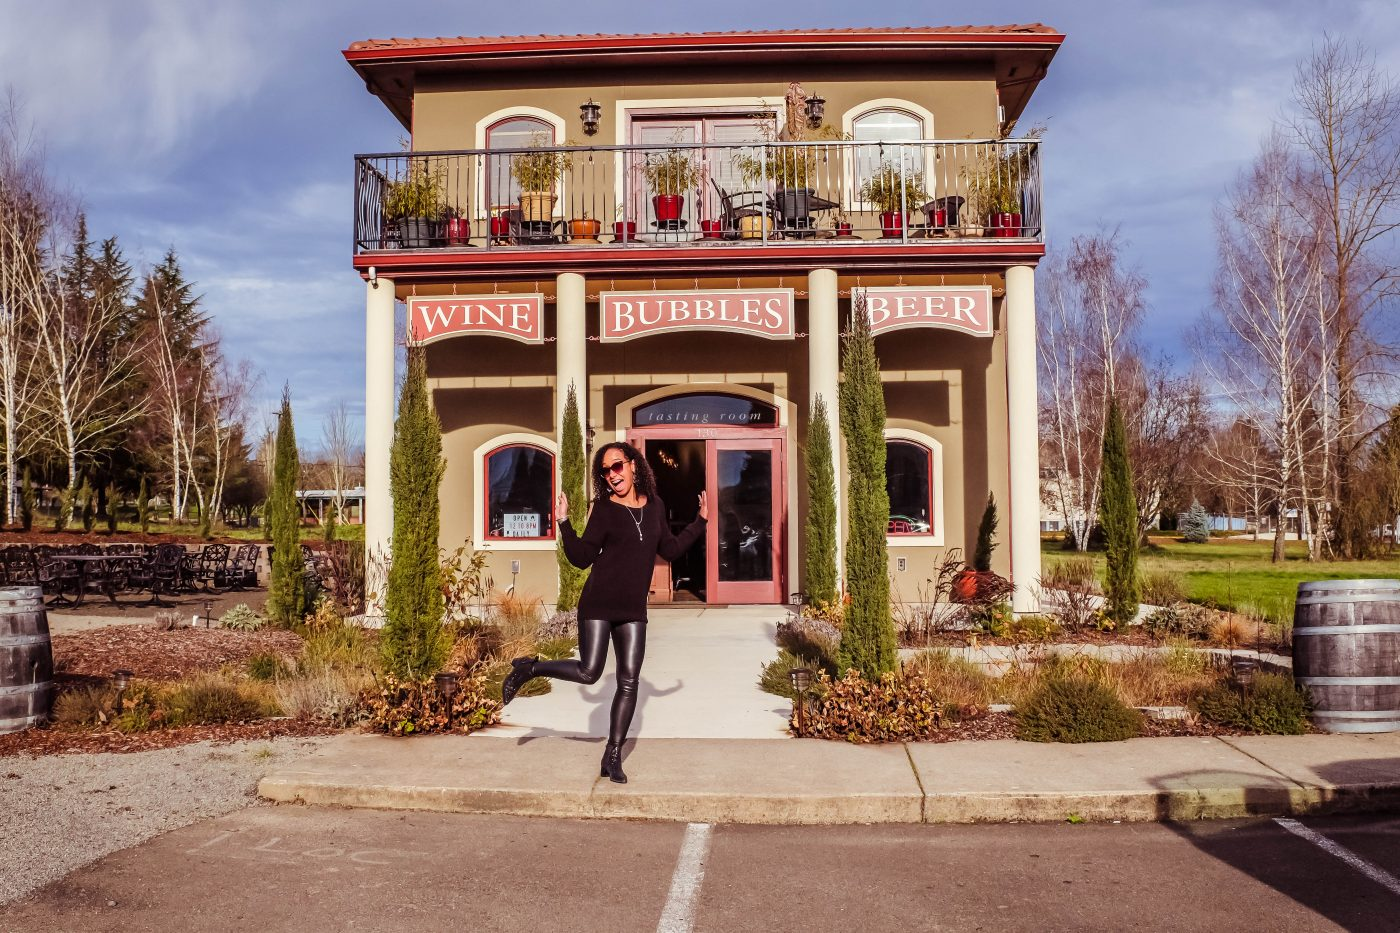 12 Wineries One Weekend in the Willamette Valley